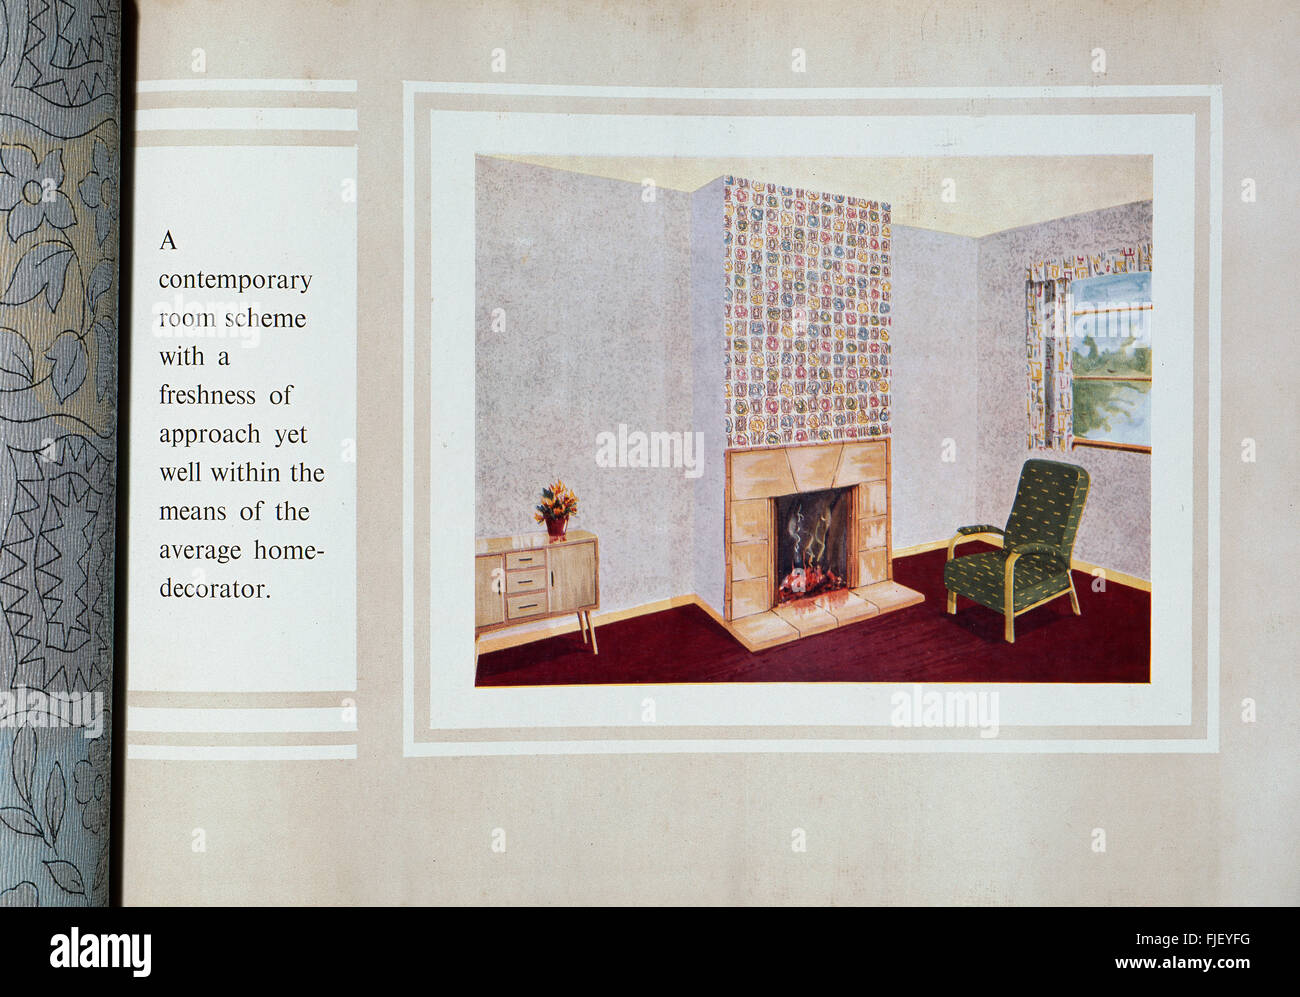 A page from a British 1950s wallpaper sample book, showing a typical livingroom of the period. - Stock Image